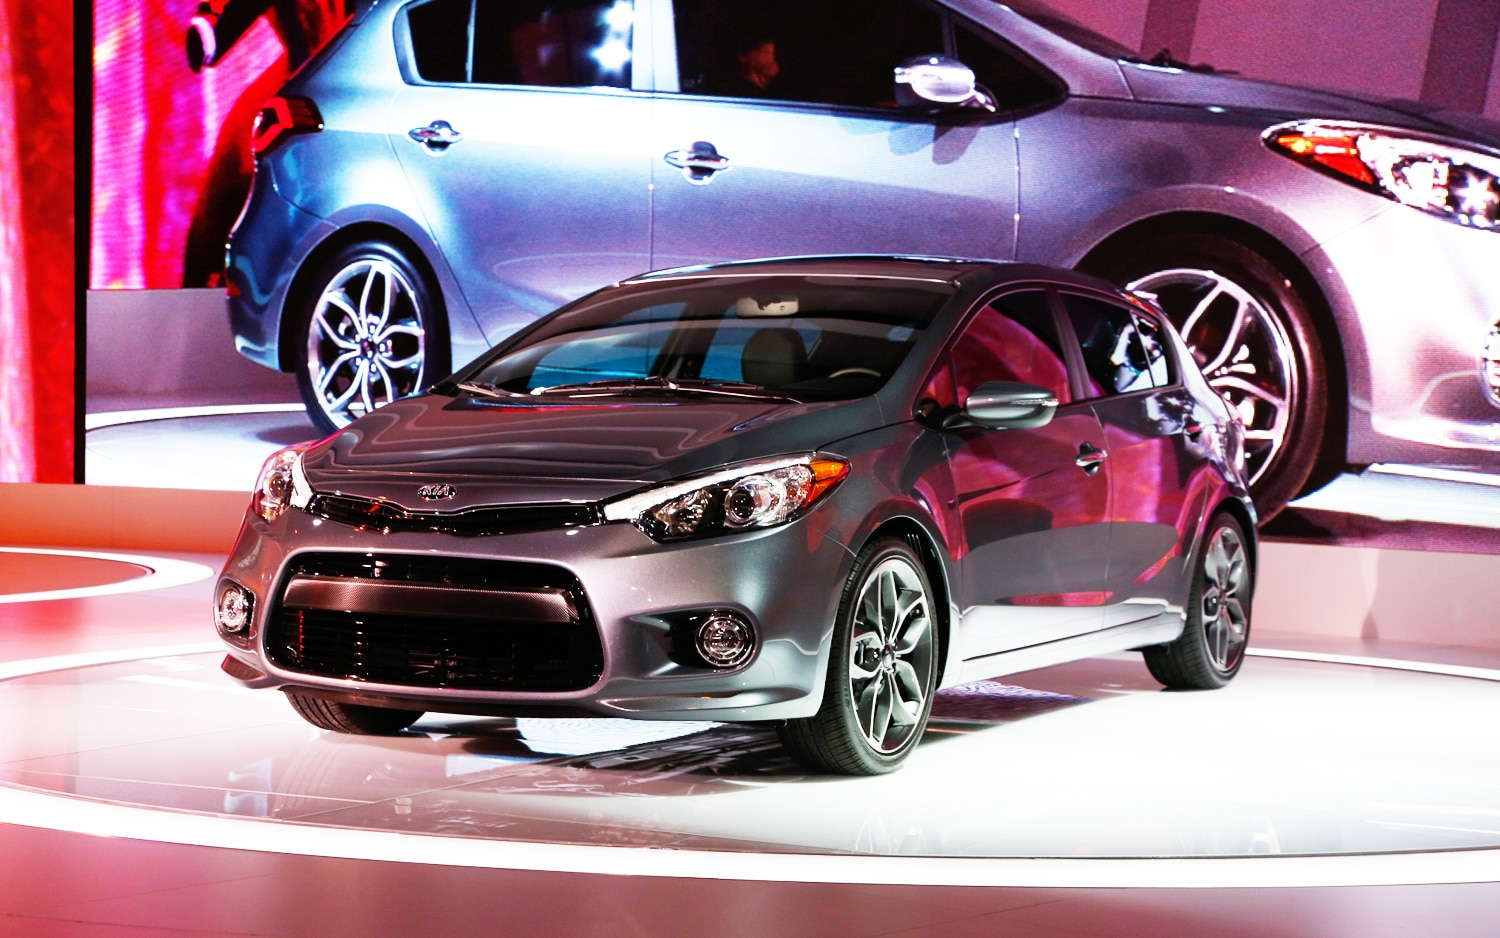 Kia Forte 5 Sx >> First Look: 2014 Kia Forte Hatchback - 2013 Chicago Auto Show - Automobile Magazine